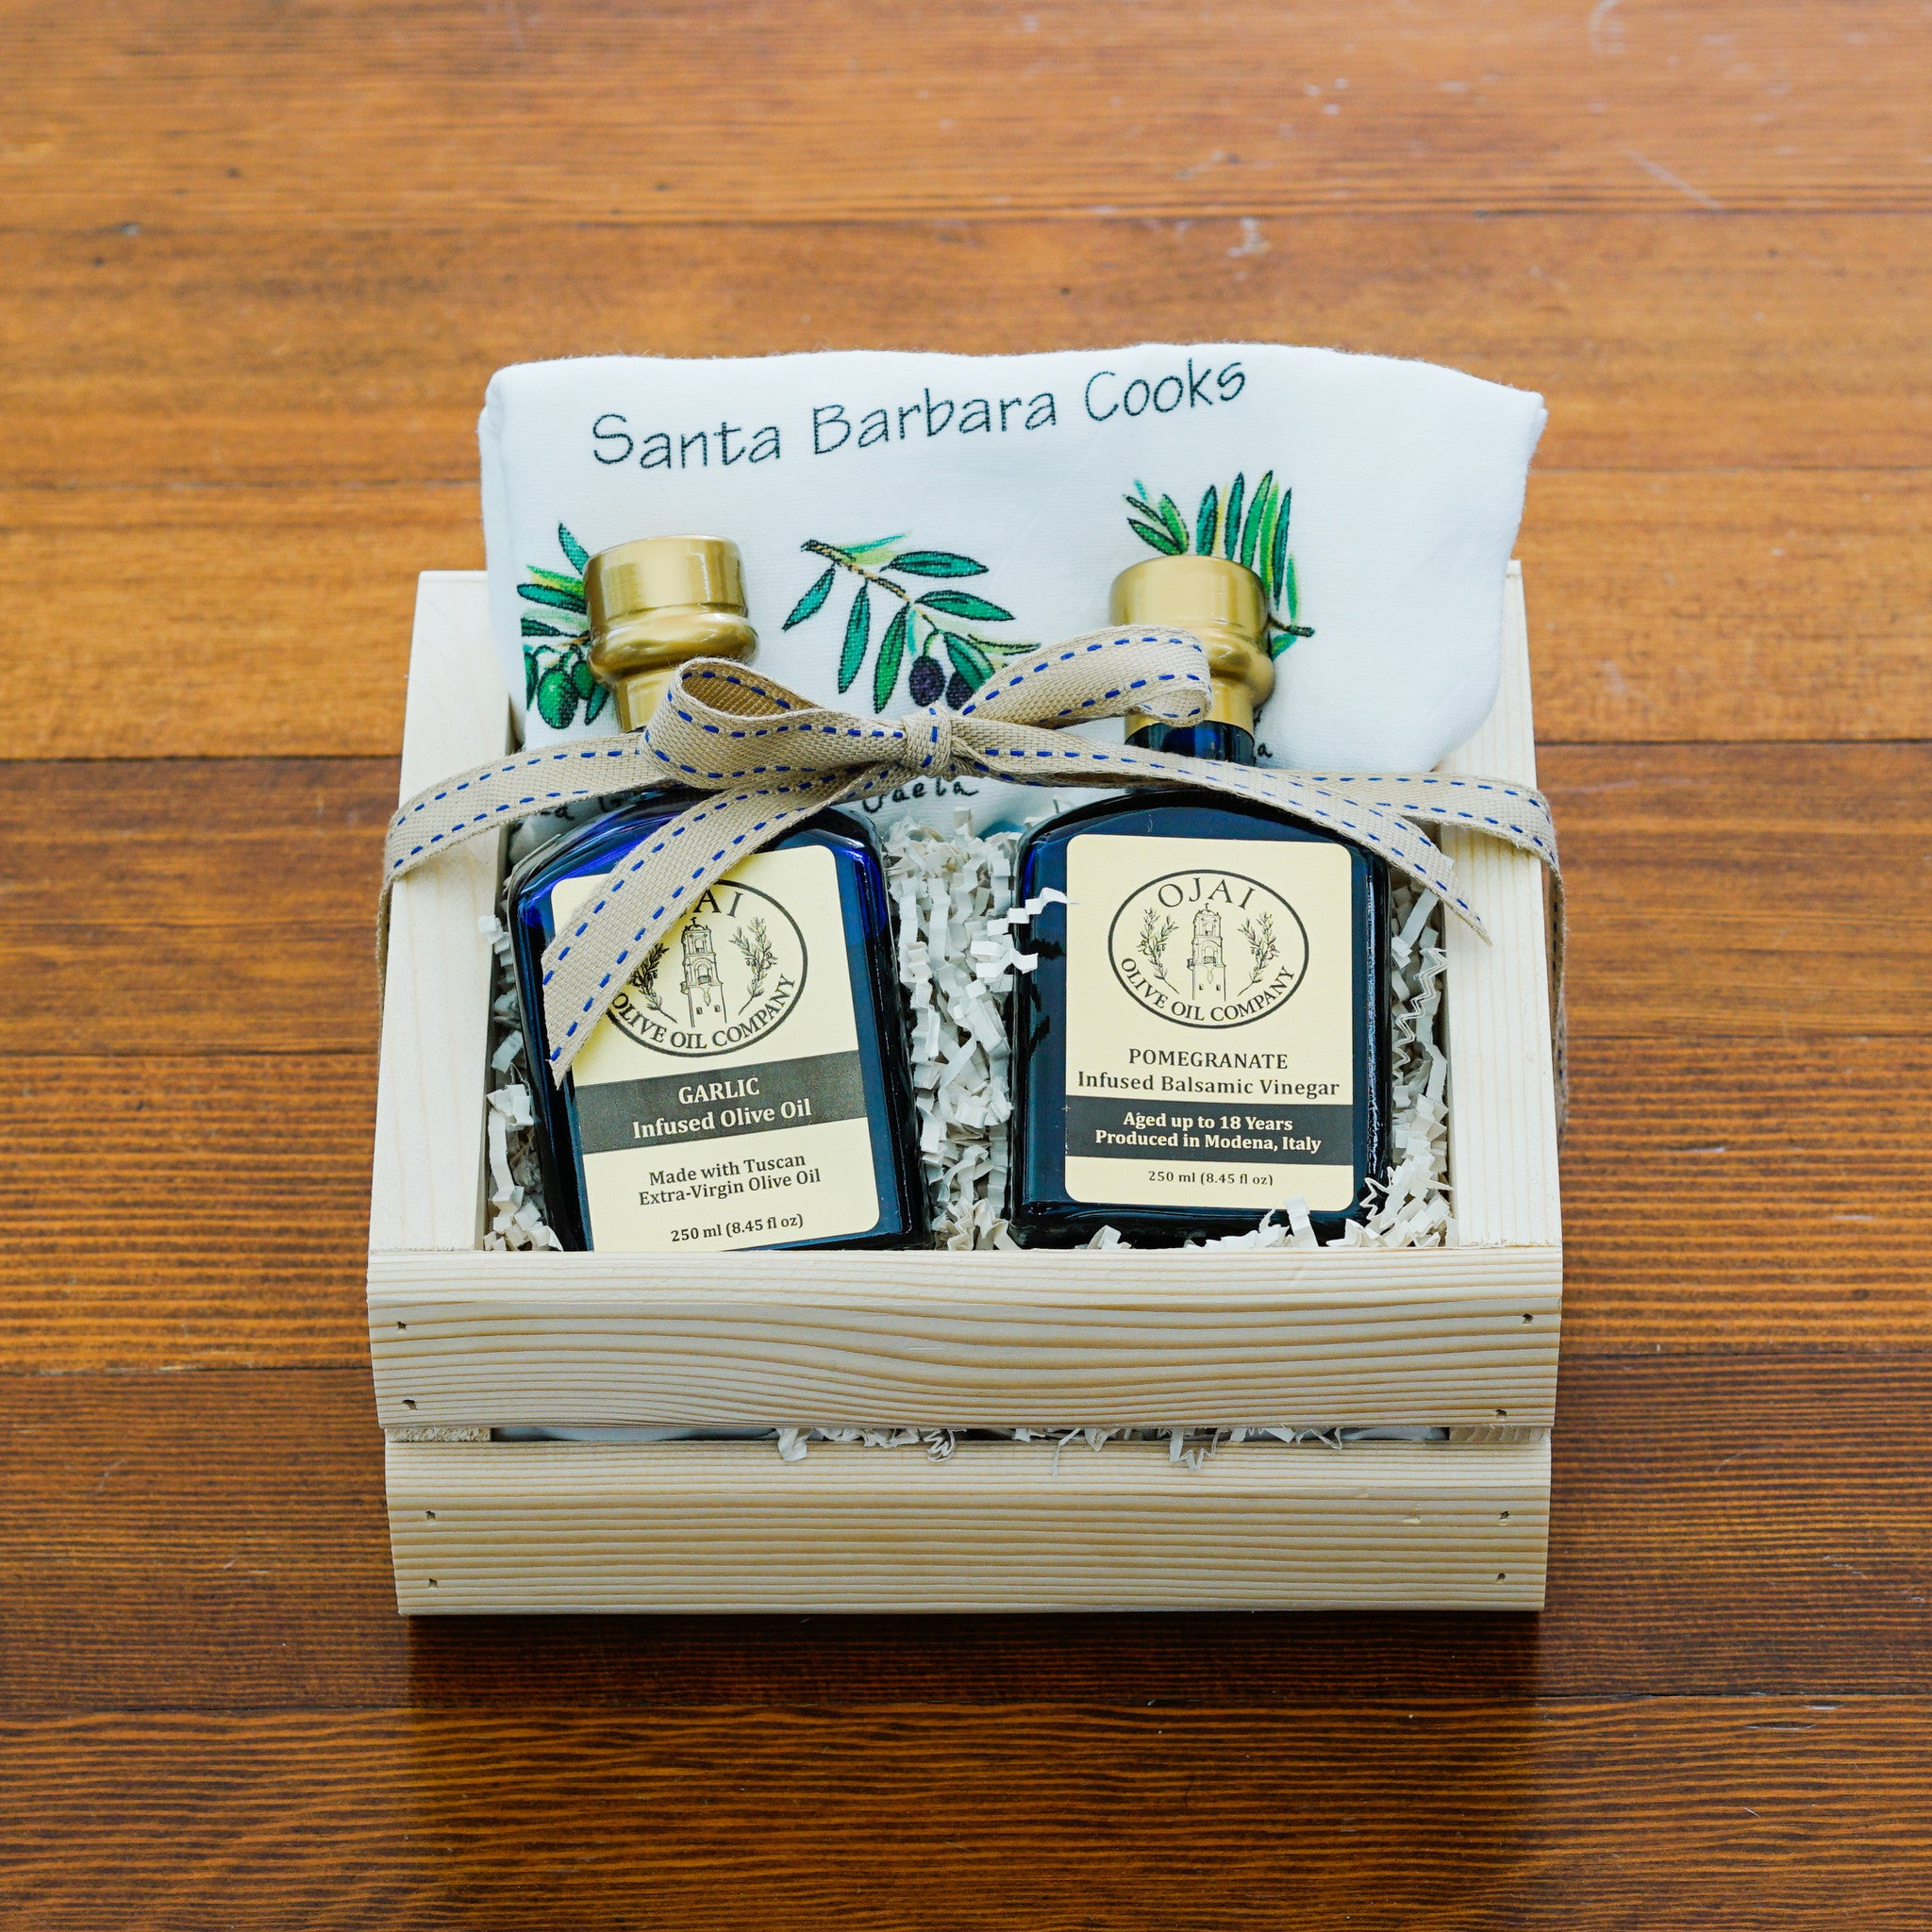 Gourmet Ojai Olive Oil Gift Crate Gift Sets and Boxes - Ojai Olive Oil, The ...